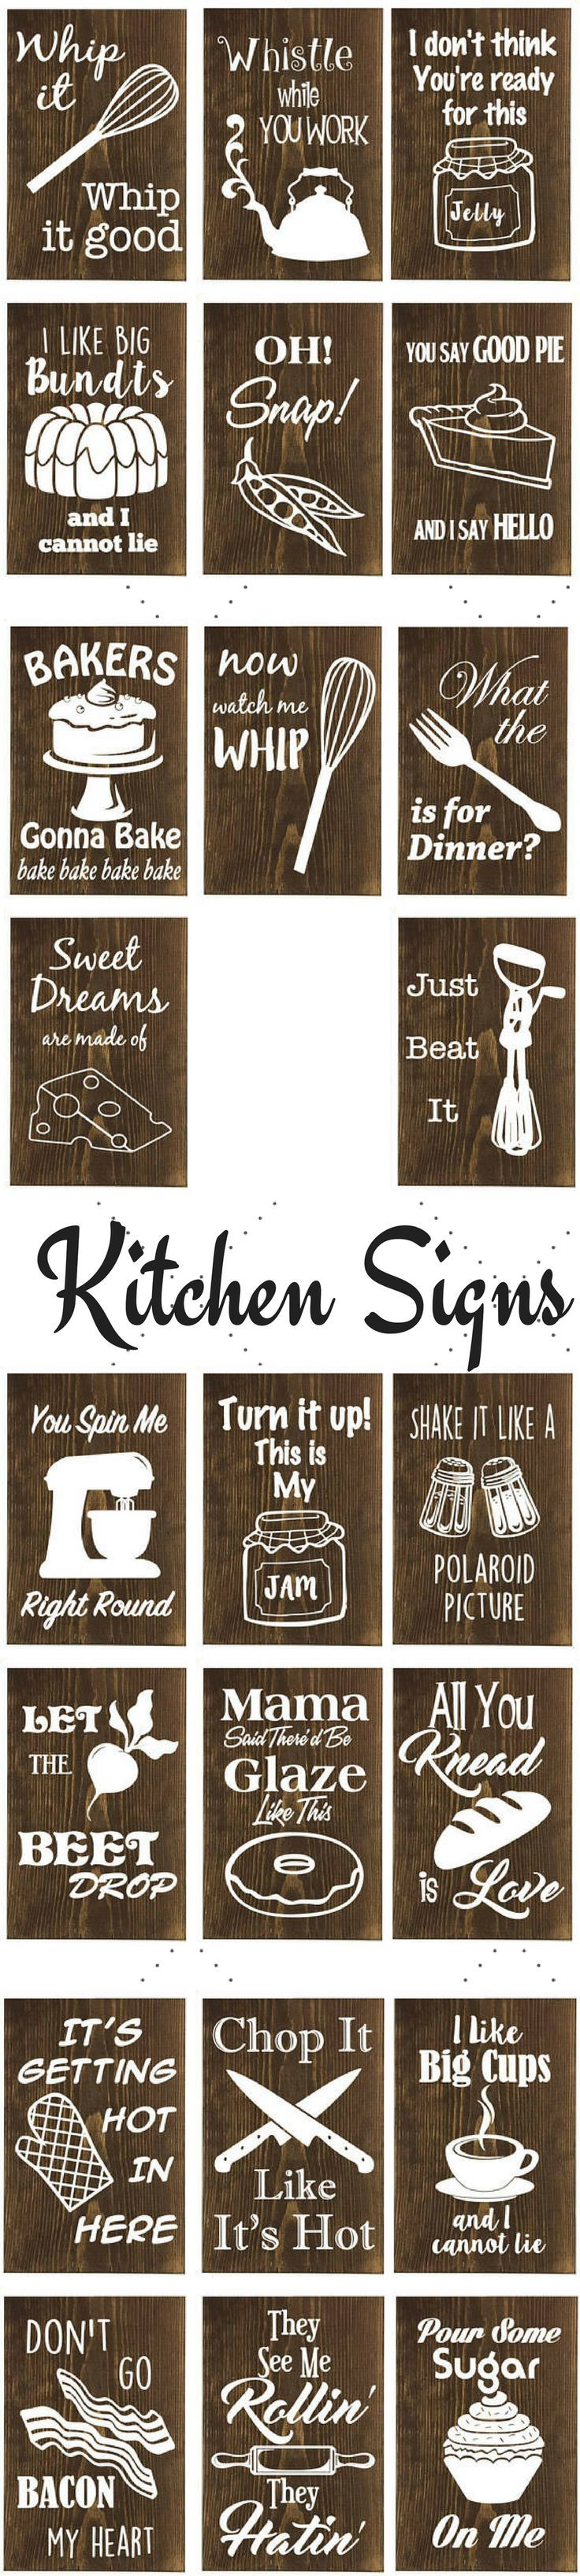 Awesome Kitchen Humor Decor